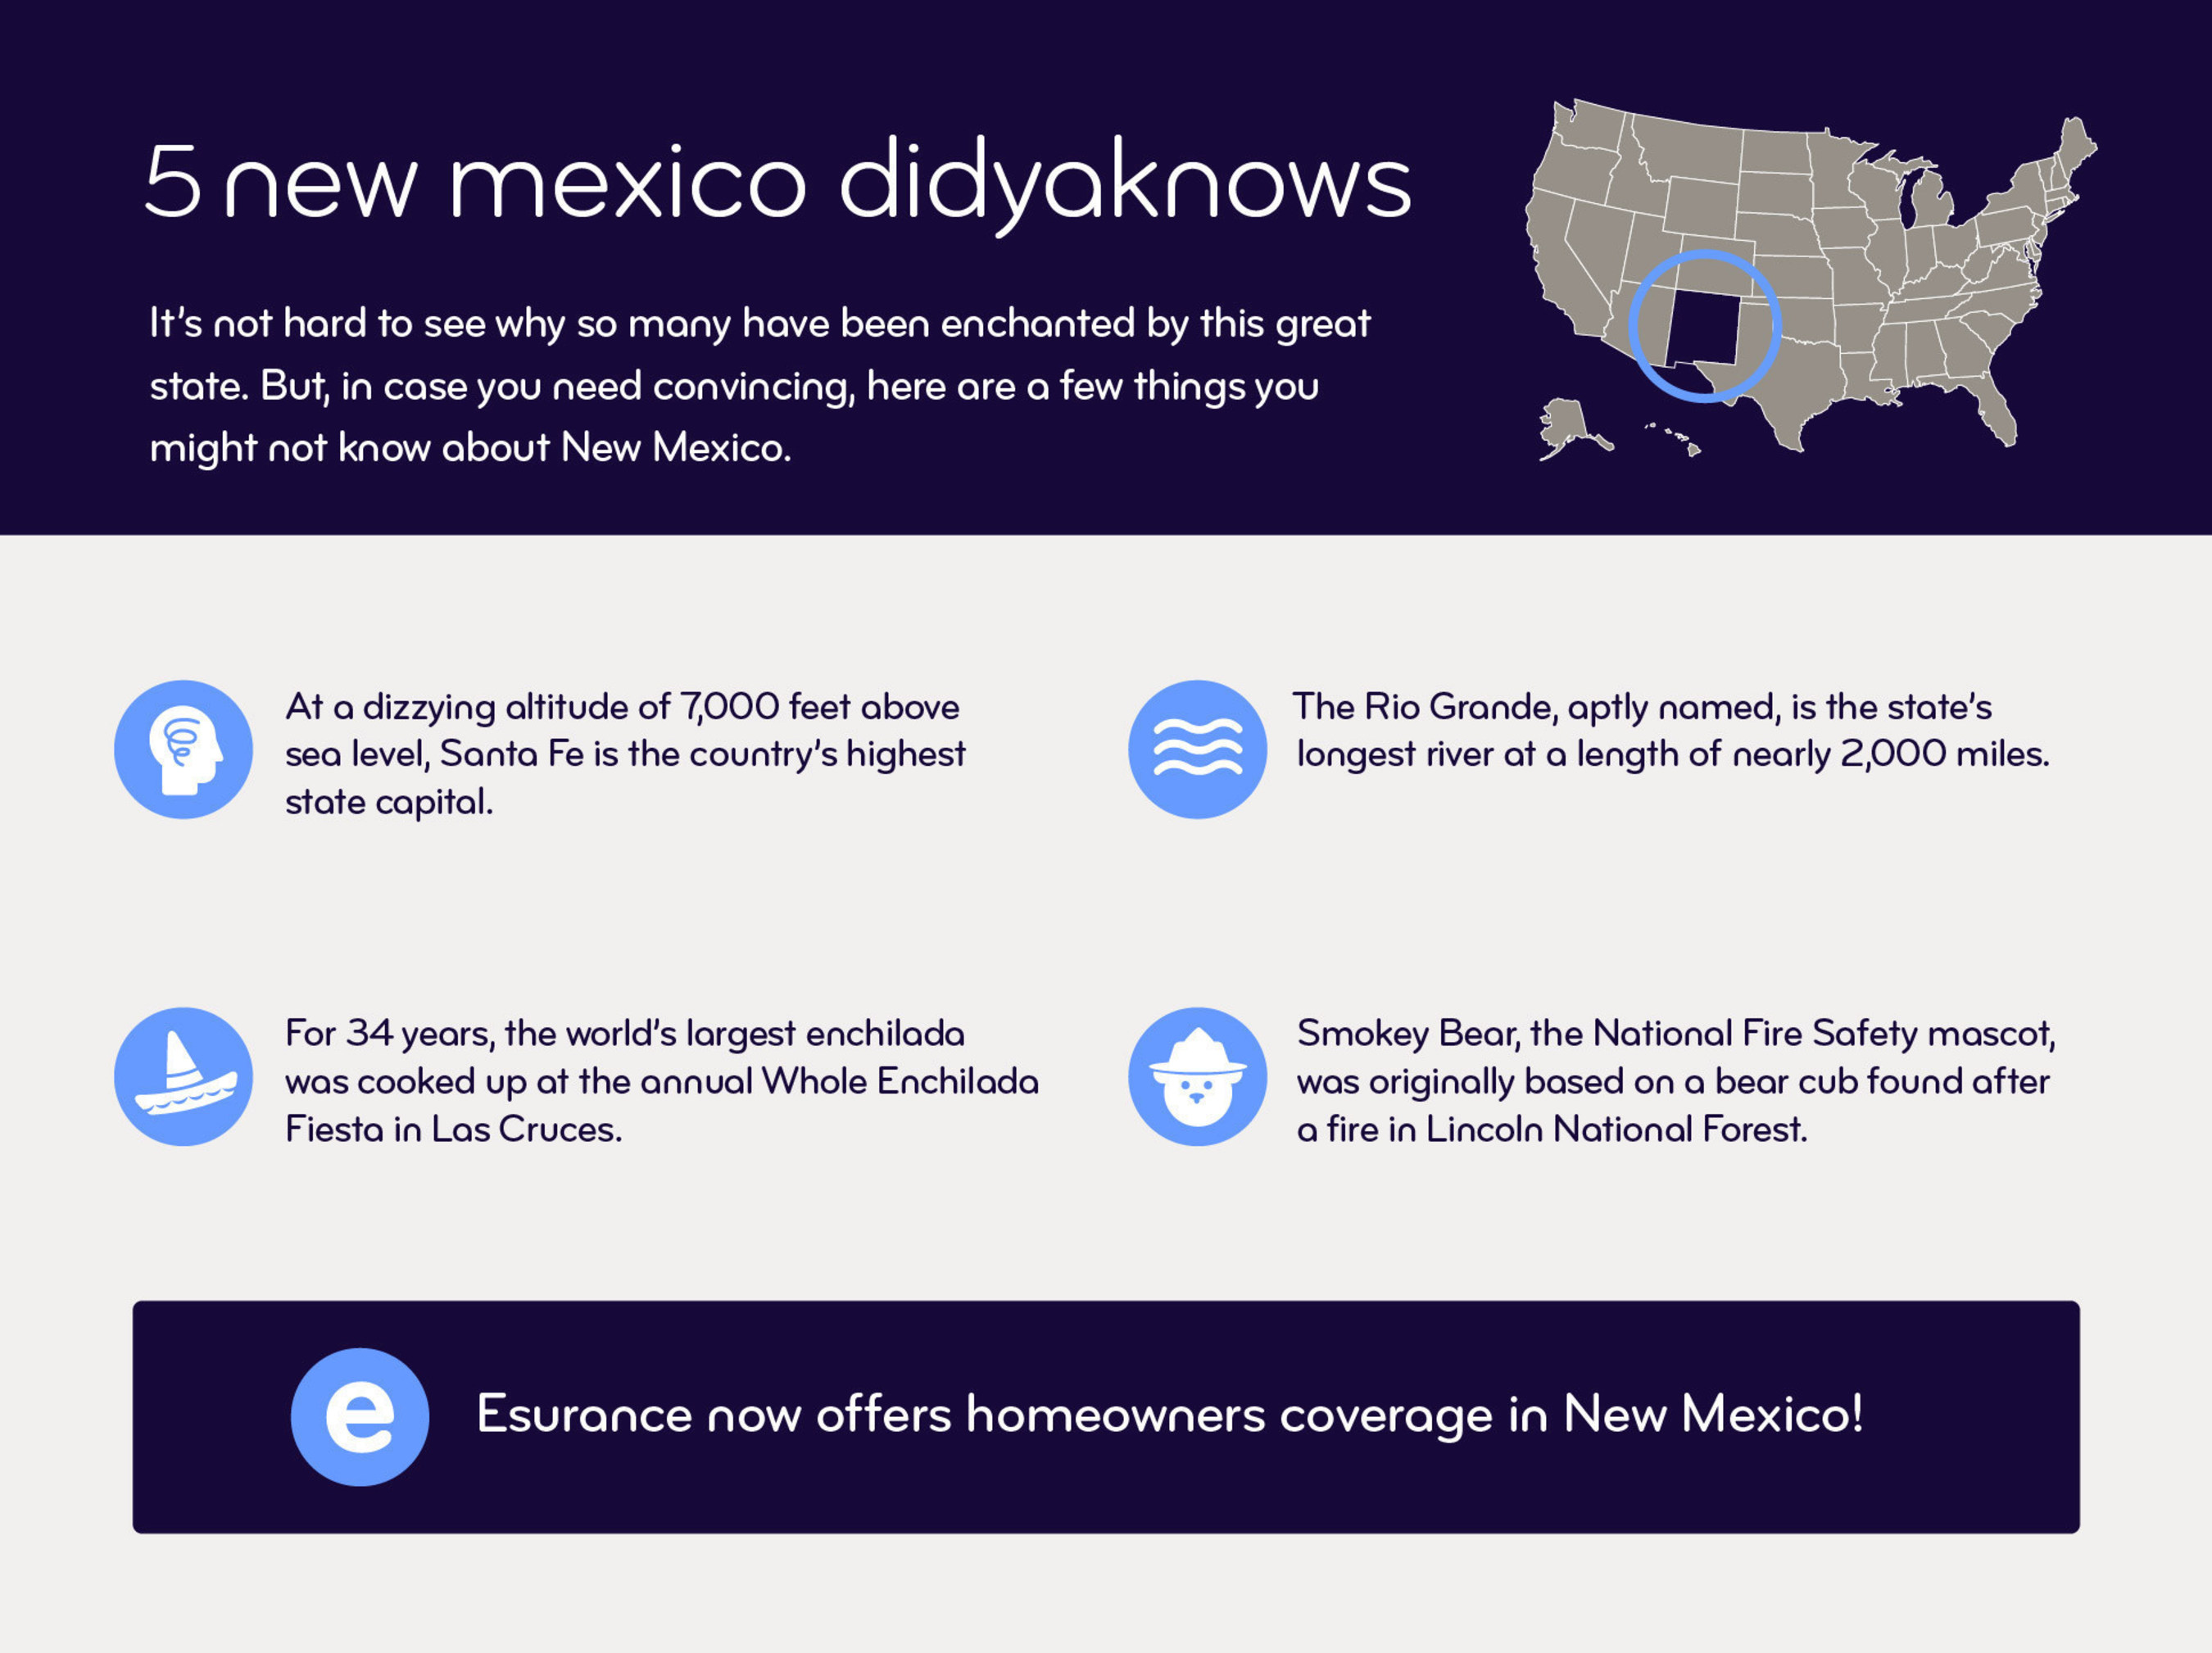 Image of: Luxury Esurance Now Offers Home Homeowners Coverage In New Mexico Insurance Esurance Homeowners Insurance Now Available In New Mexico